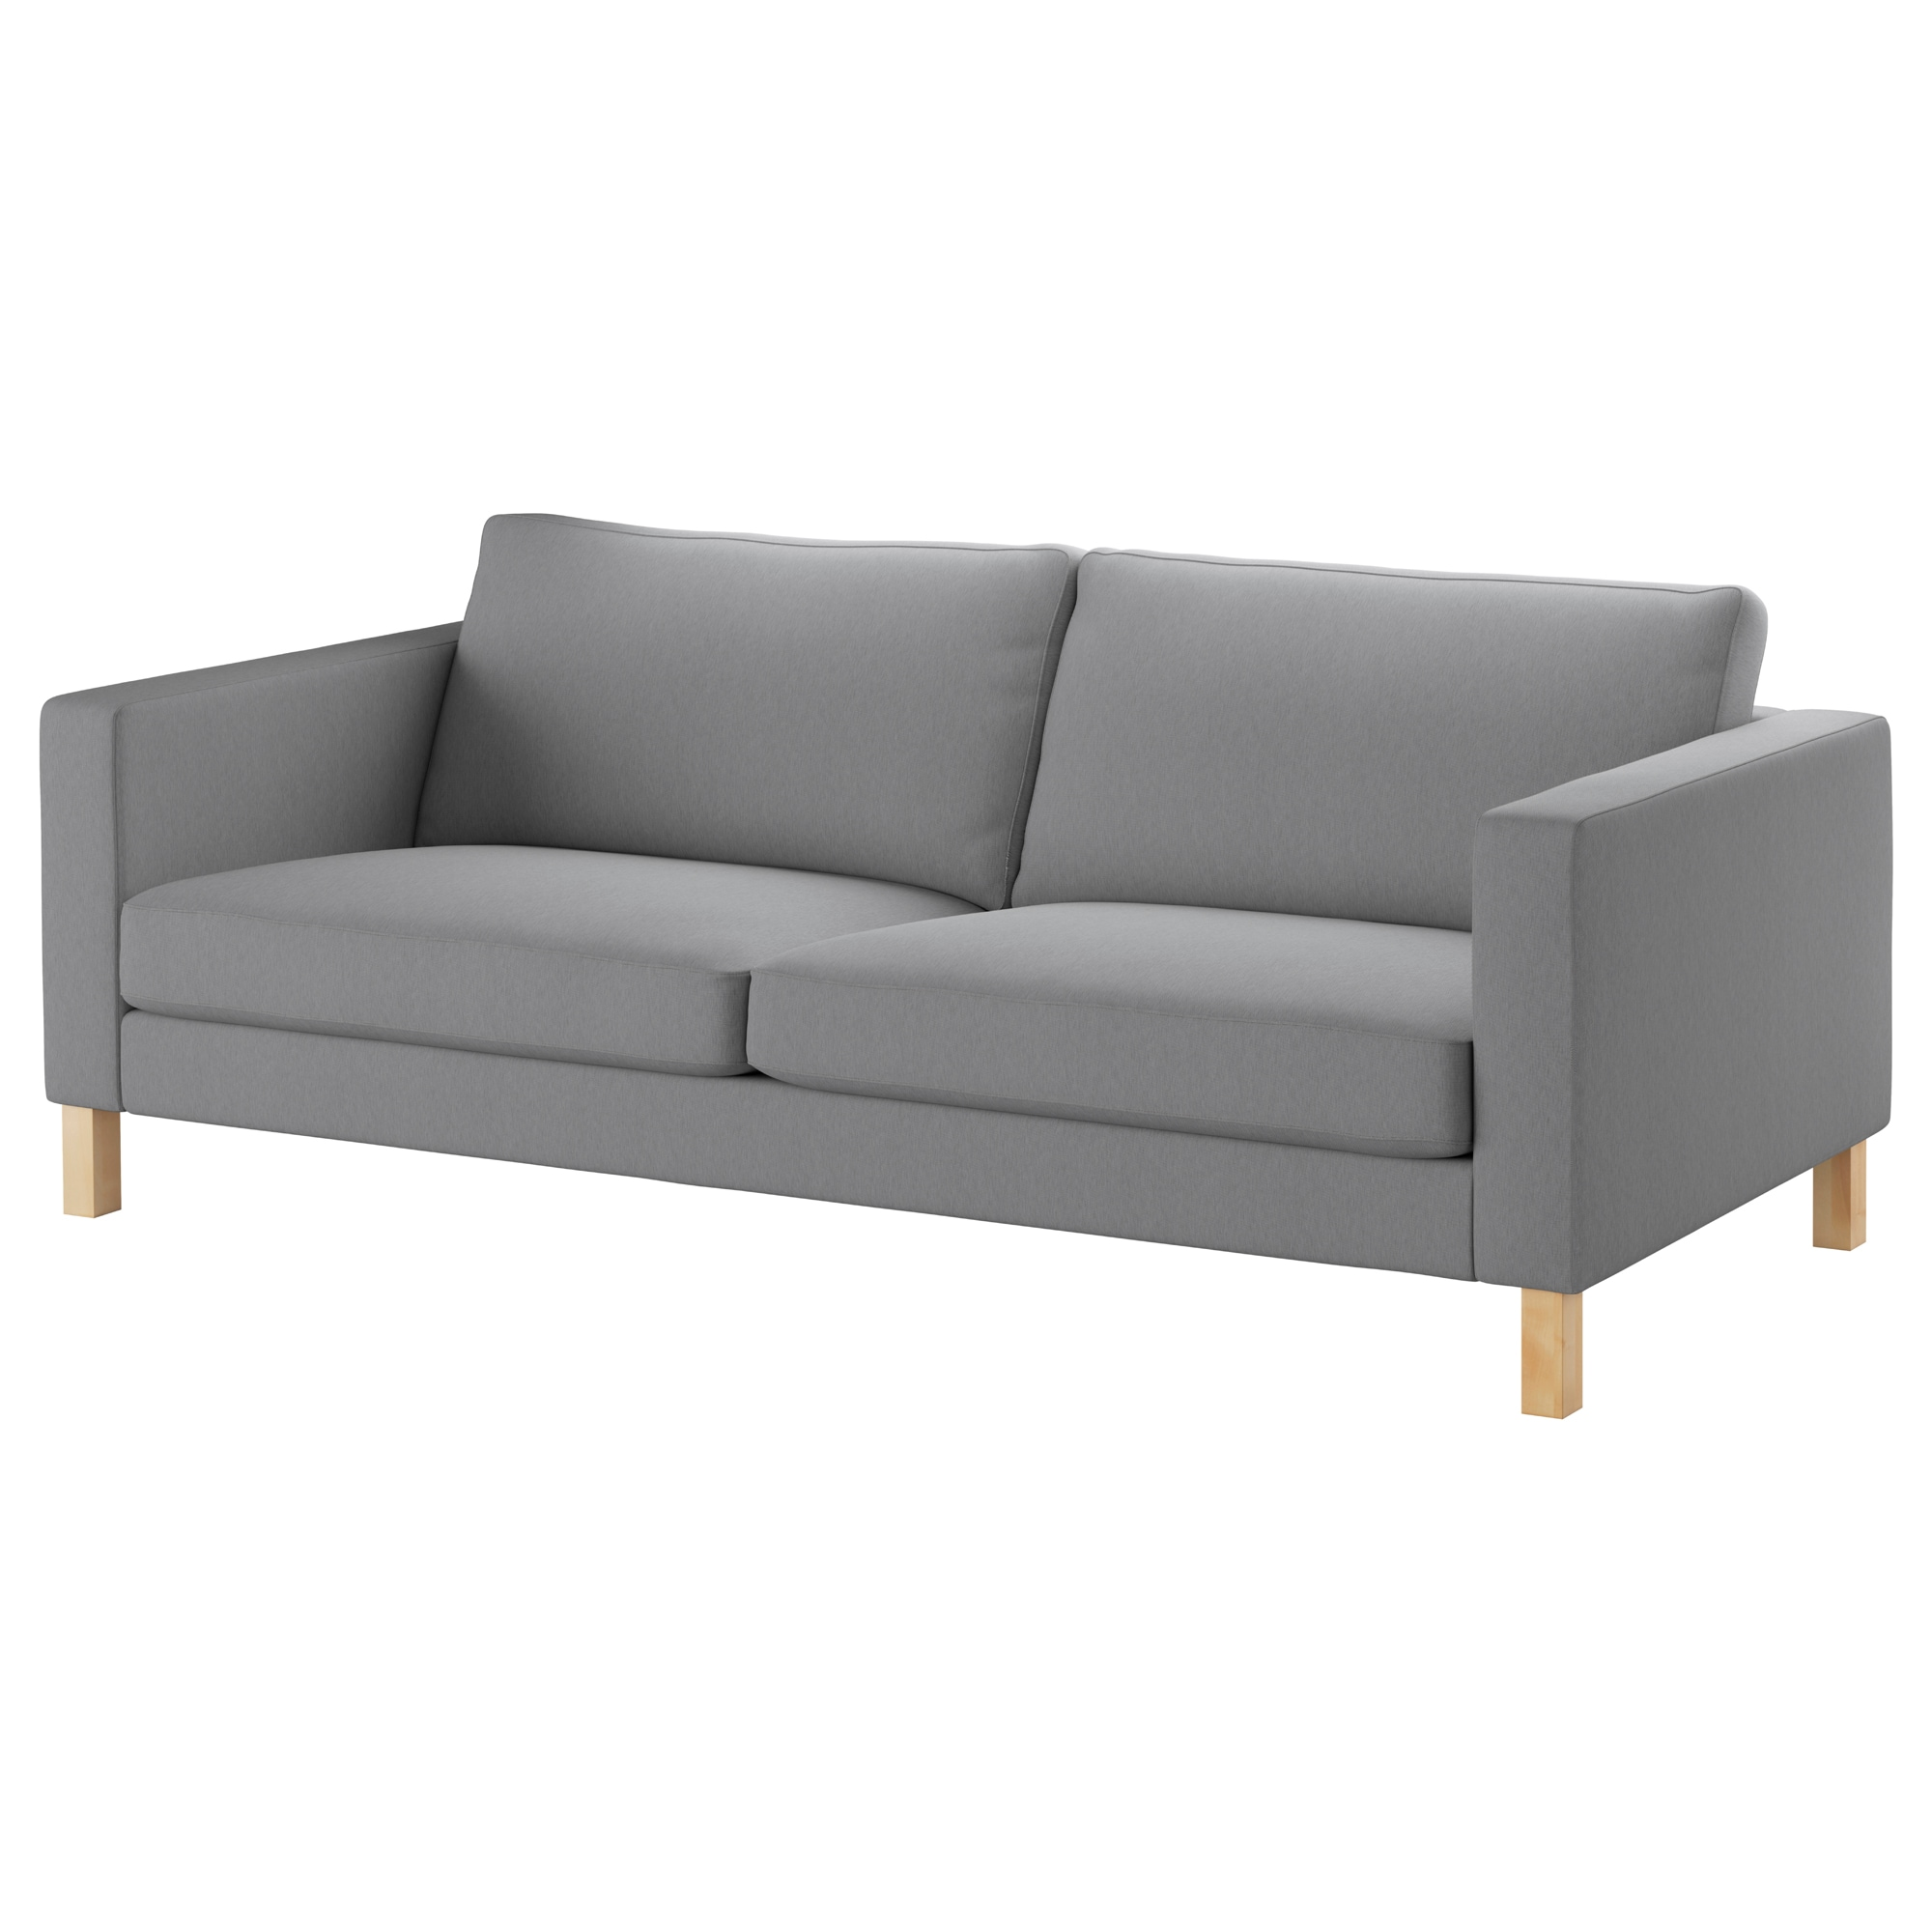 Fabric Sofas - Modern & Contemporary - IKEA